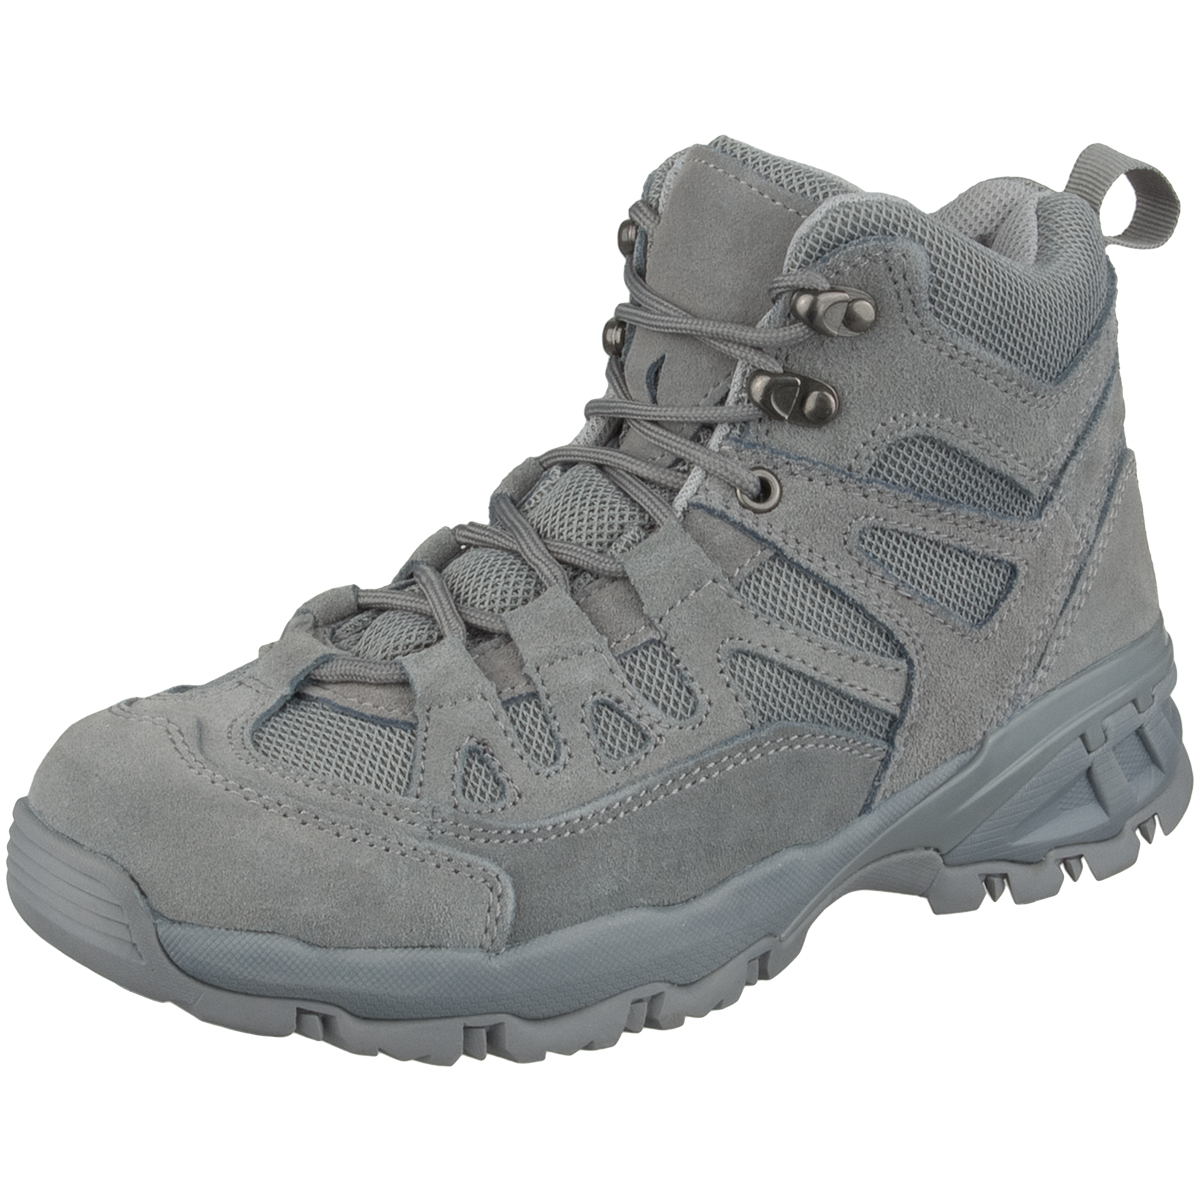 Outdoor Trail Mid Cut Boots Anthracite